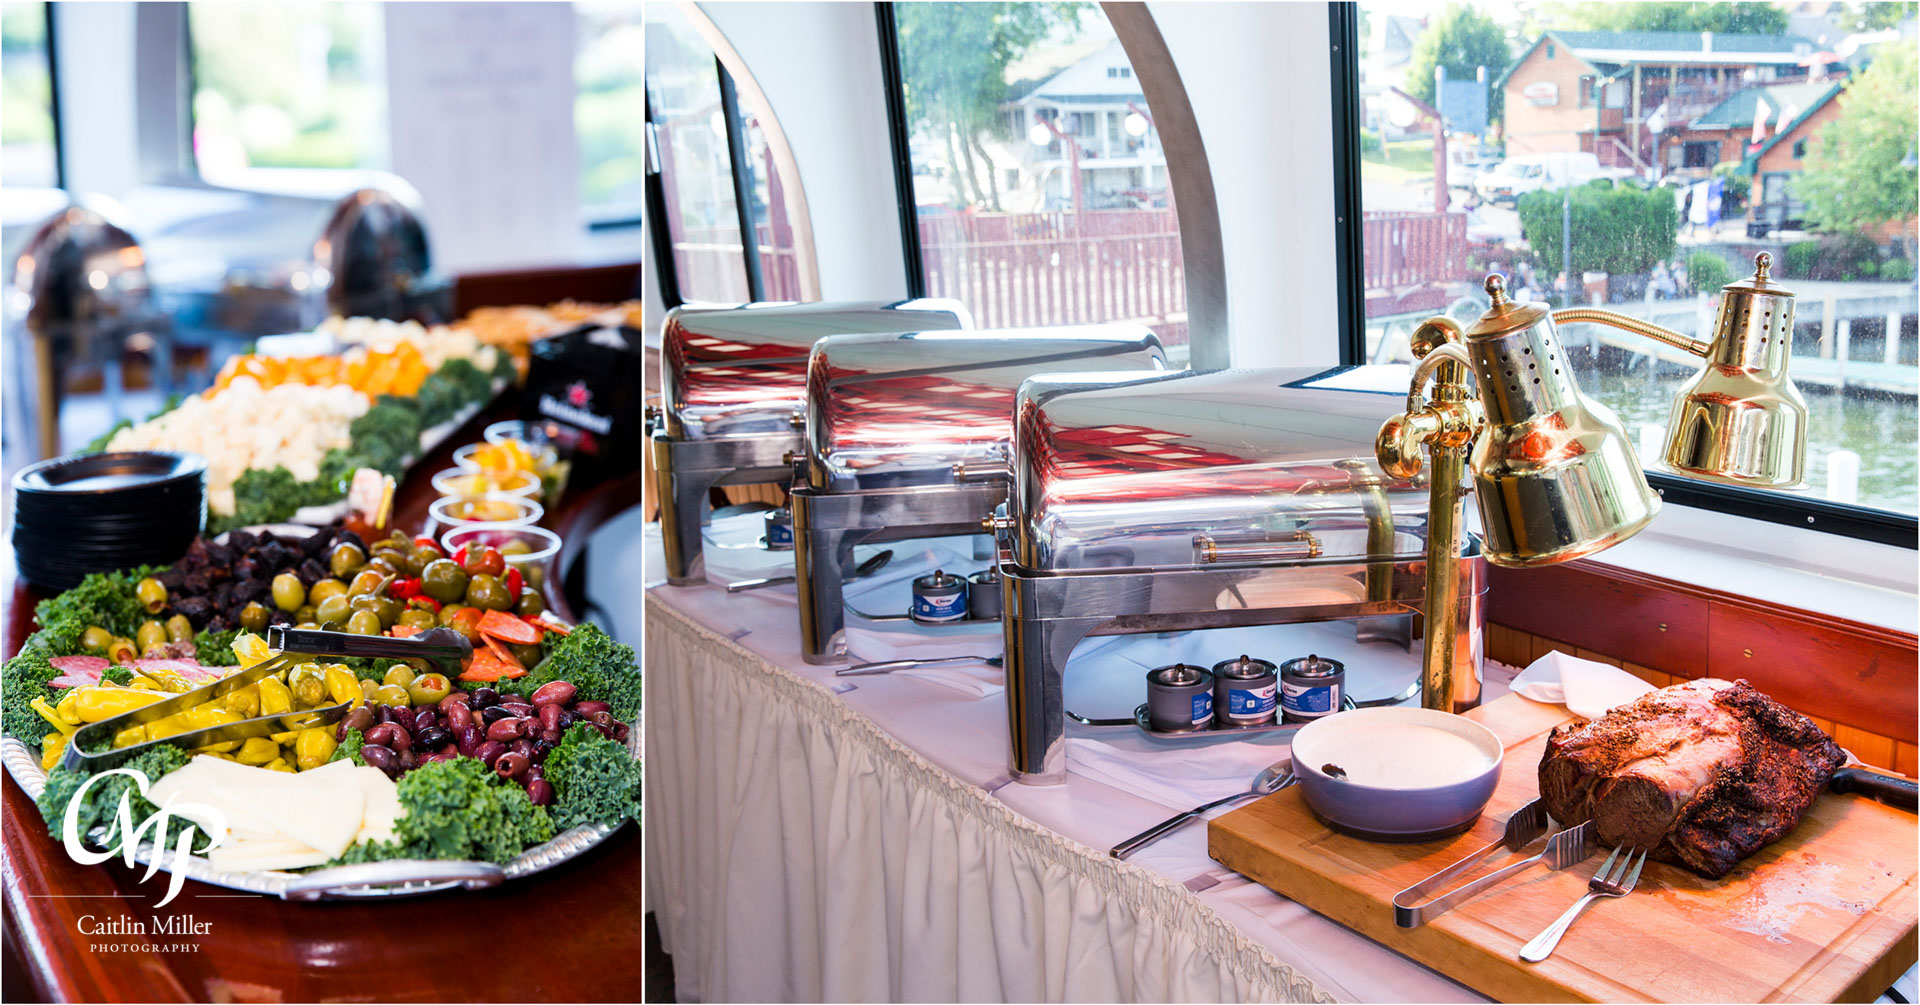 bombard-22.jpg from Jan and Robert's vow renewal on shoreline Cruise's Adirondac Boat on Lake George, NY by Saratoga Wedding Photographer Caitlin Miller Photography. Lake George Wedding Photographer. Stamford wedding photographer. Albany wedding photographer. Shoreline Cruises Wedding Photographer. Saratoga Wedding Photographer